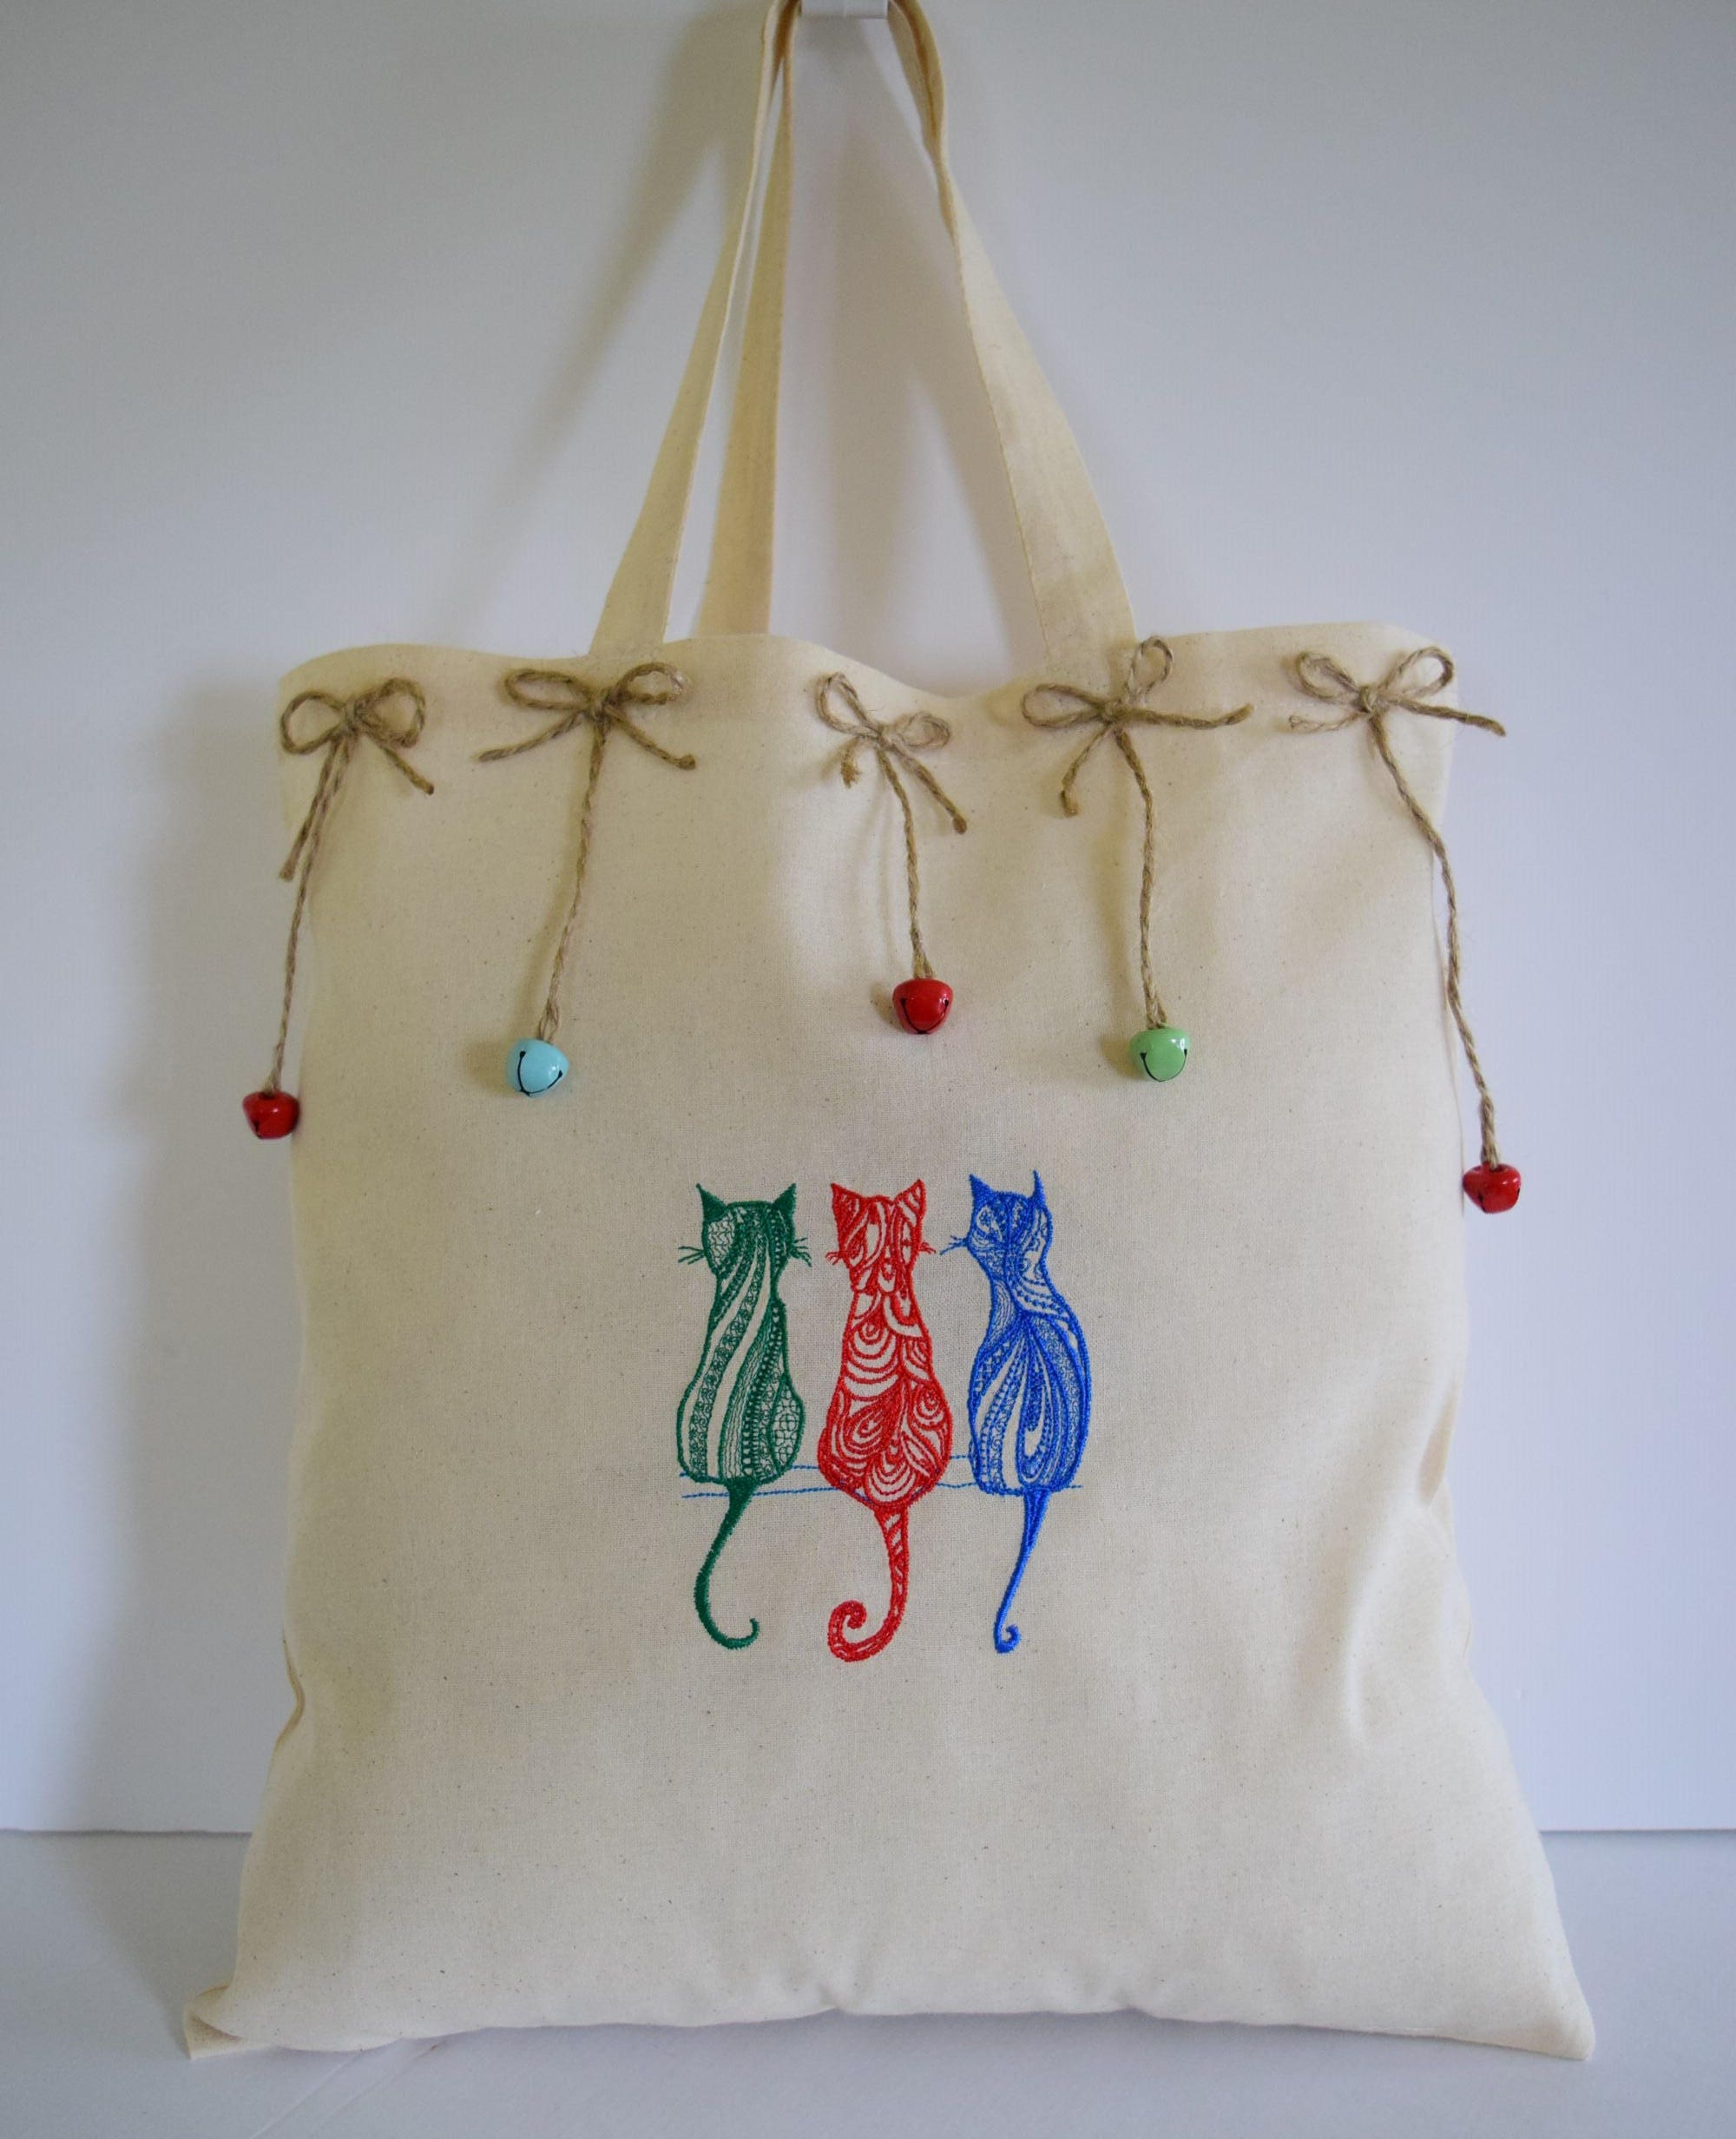 Cat Bag Shopping Bags Mosaic Embroidered Shopper Reusable Bag Eco Friendly Recycled Cotton Calico Grocery Market Tote